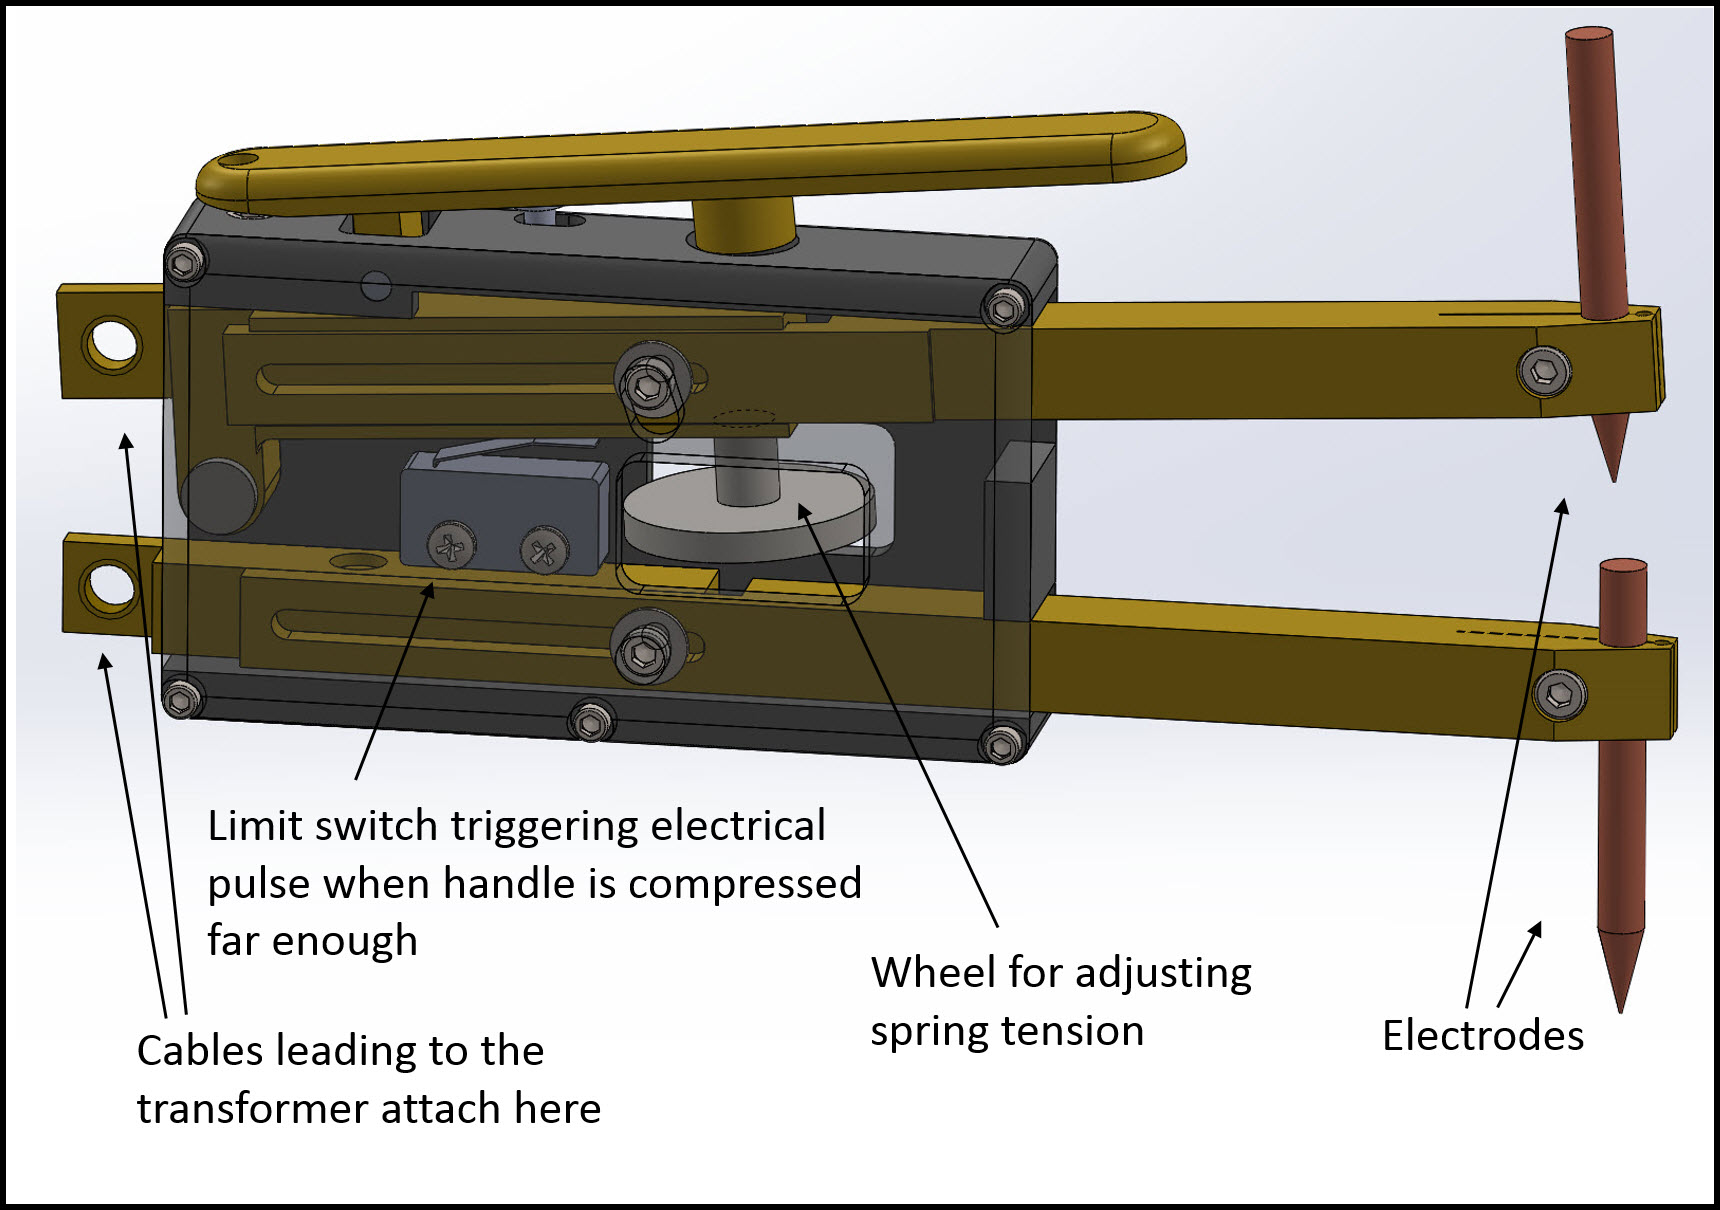 Spot Welding Diagram Electrical Wiring Diagrams Welder Zoes Blog Thing Lincoln